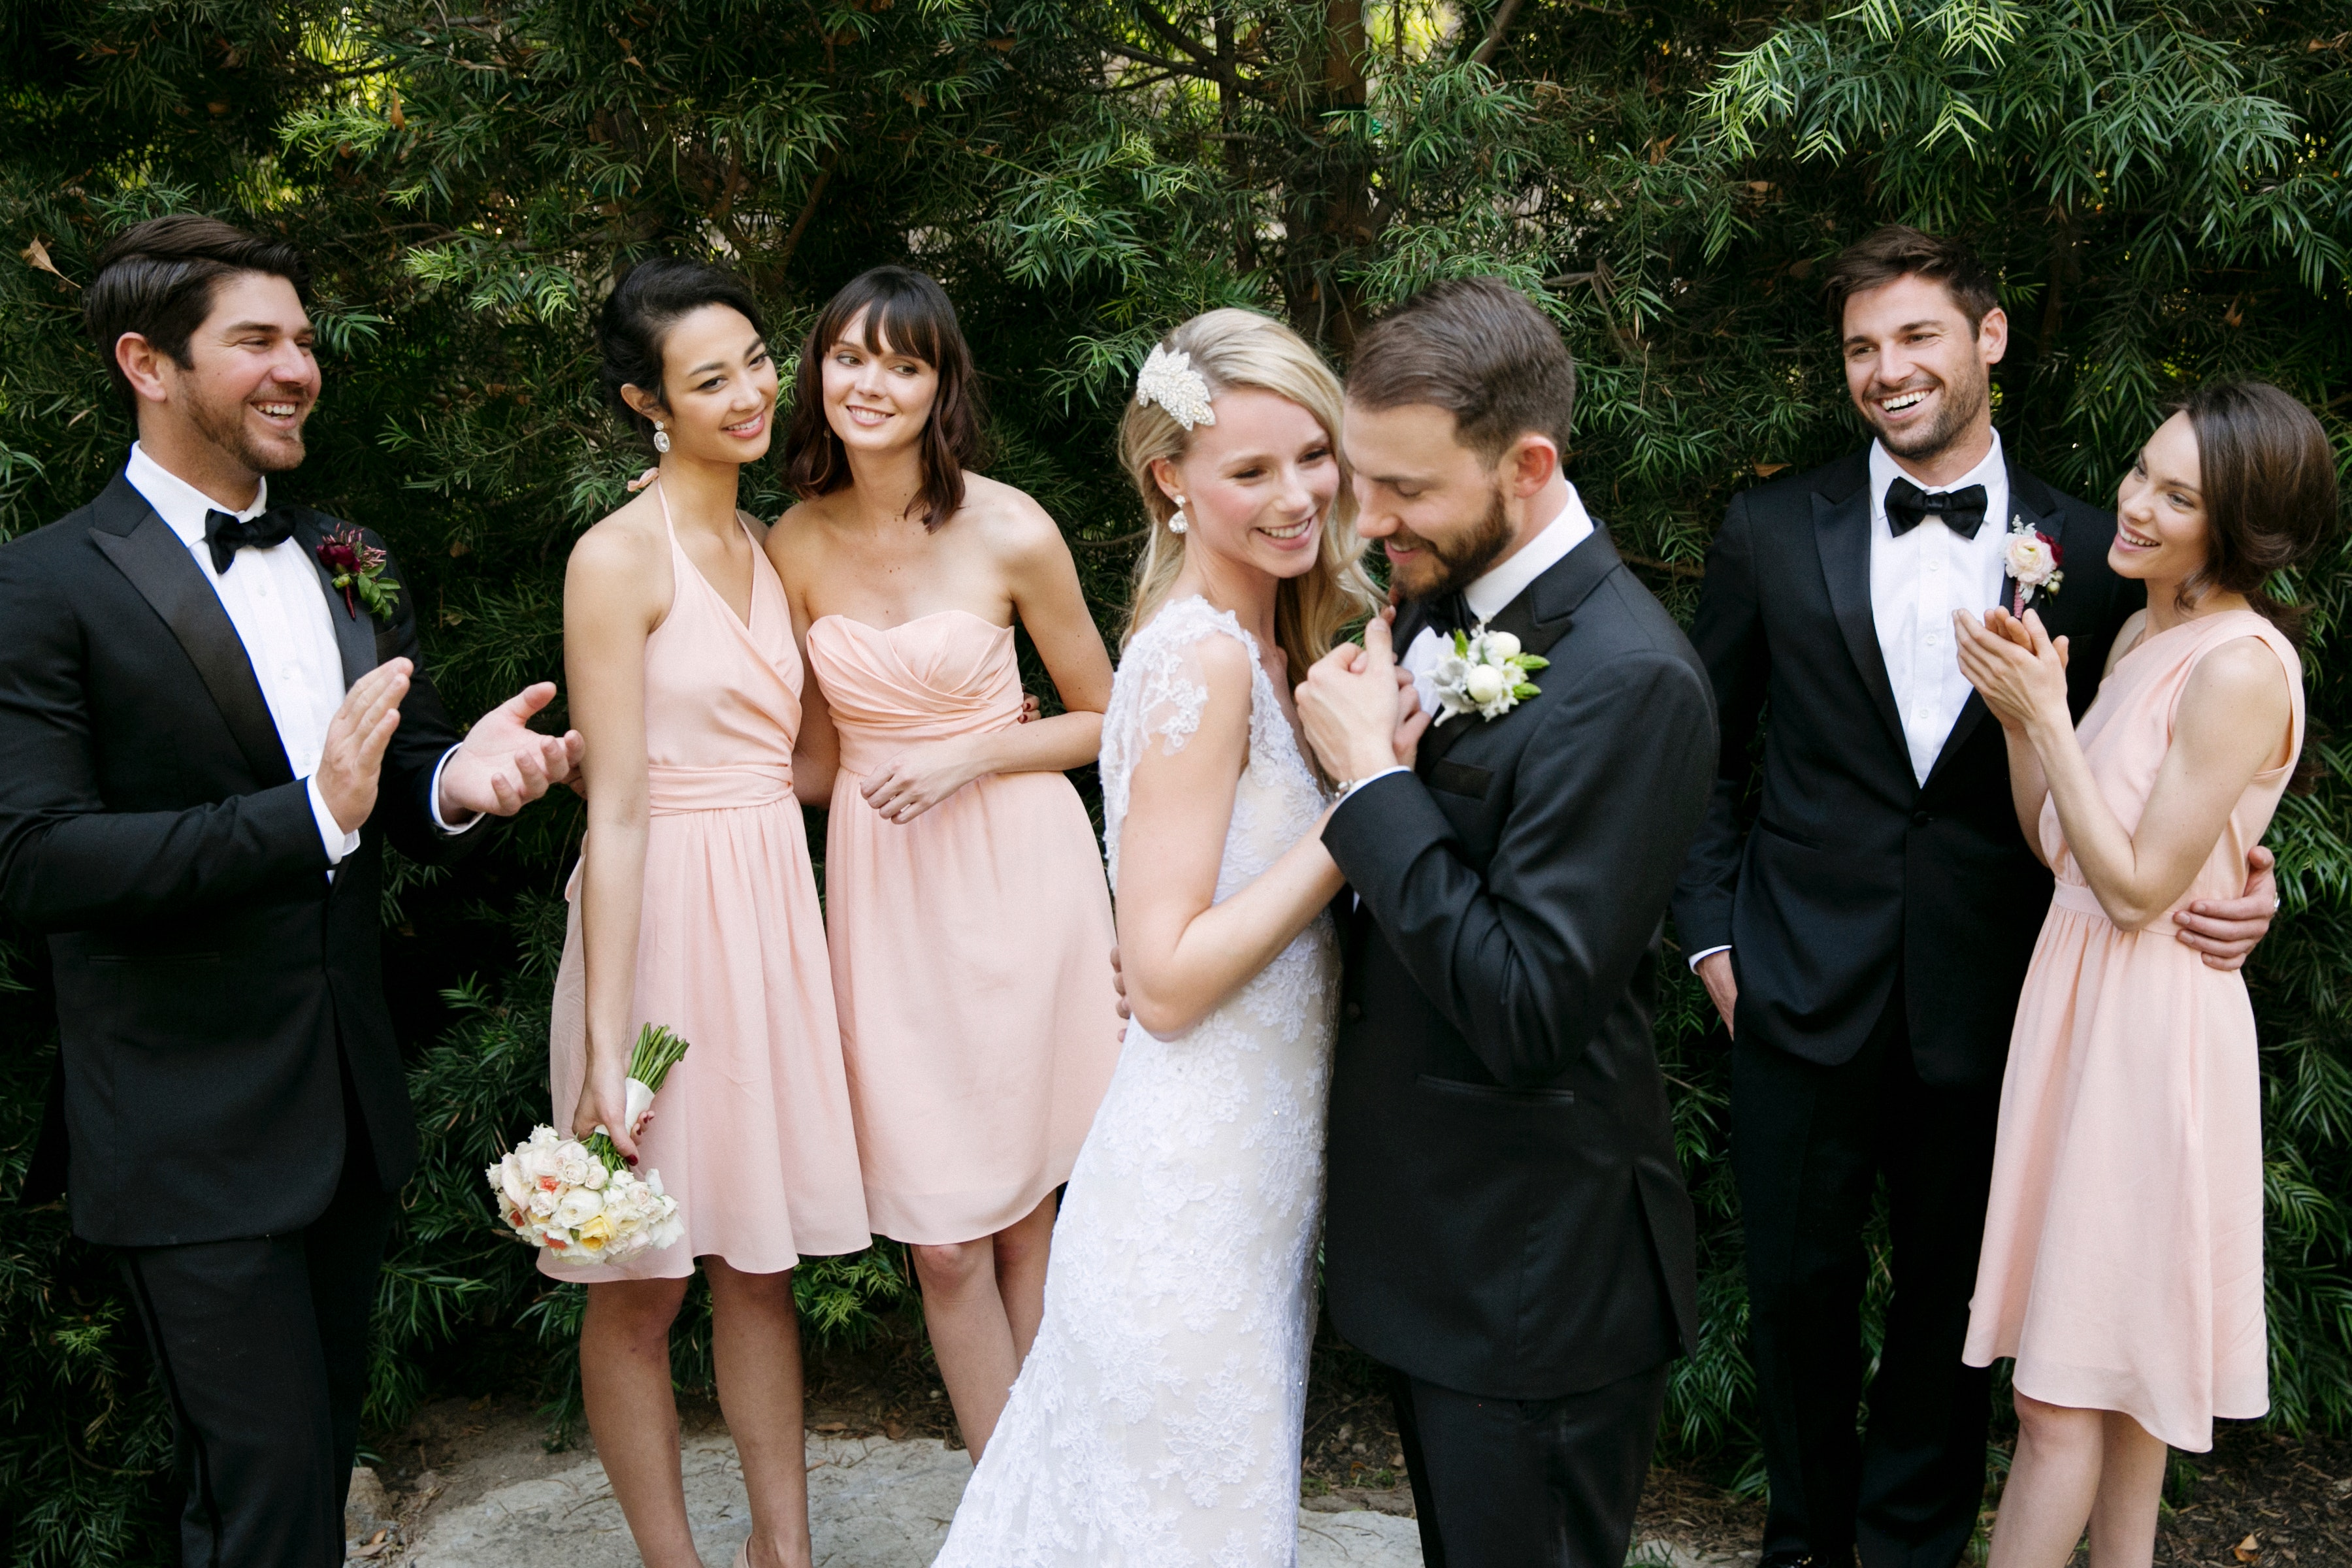 8 Reasons Renting Bridesmaid Dresses Is Brilliant Plus How To Convince Your Bride To Get On Board,Short Beach Wedding Dresses 2020